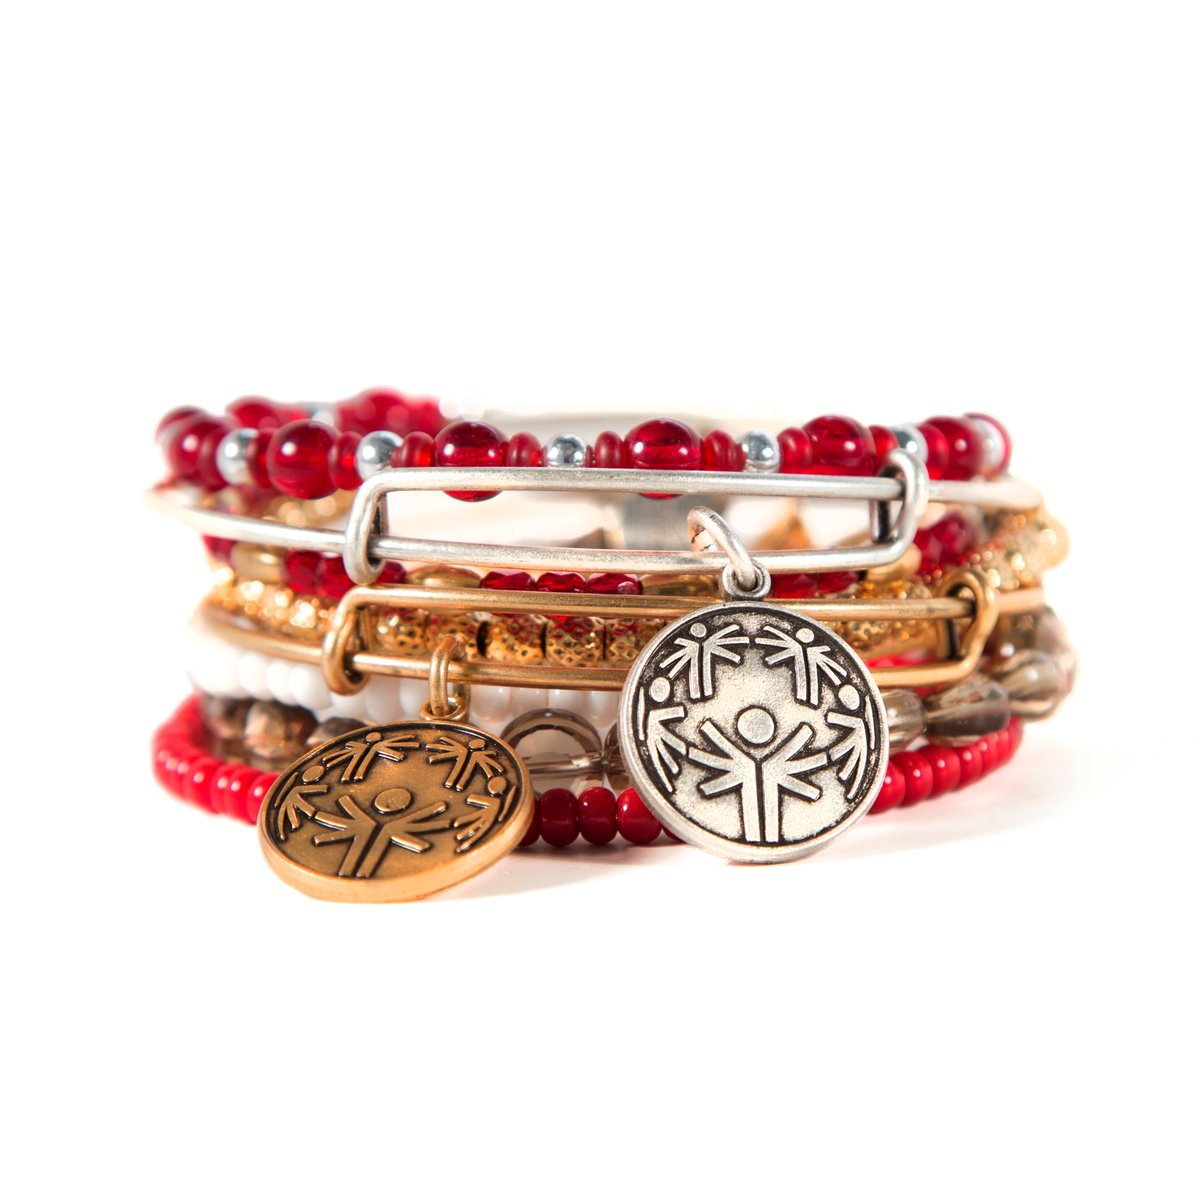 Show your love for Special Olympics wherever you go! Order your @alexandani #PowerofUnity bangle TODAY!  http:// bit.ly/2woGbaC  &nbsp;  <br>http://pic.twitter.com/yT2fYJEUtG